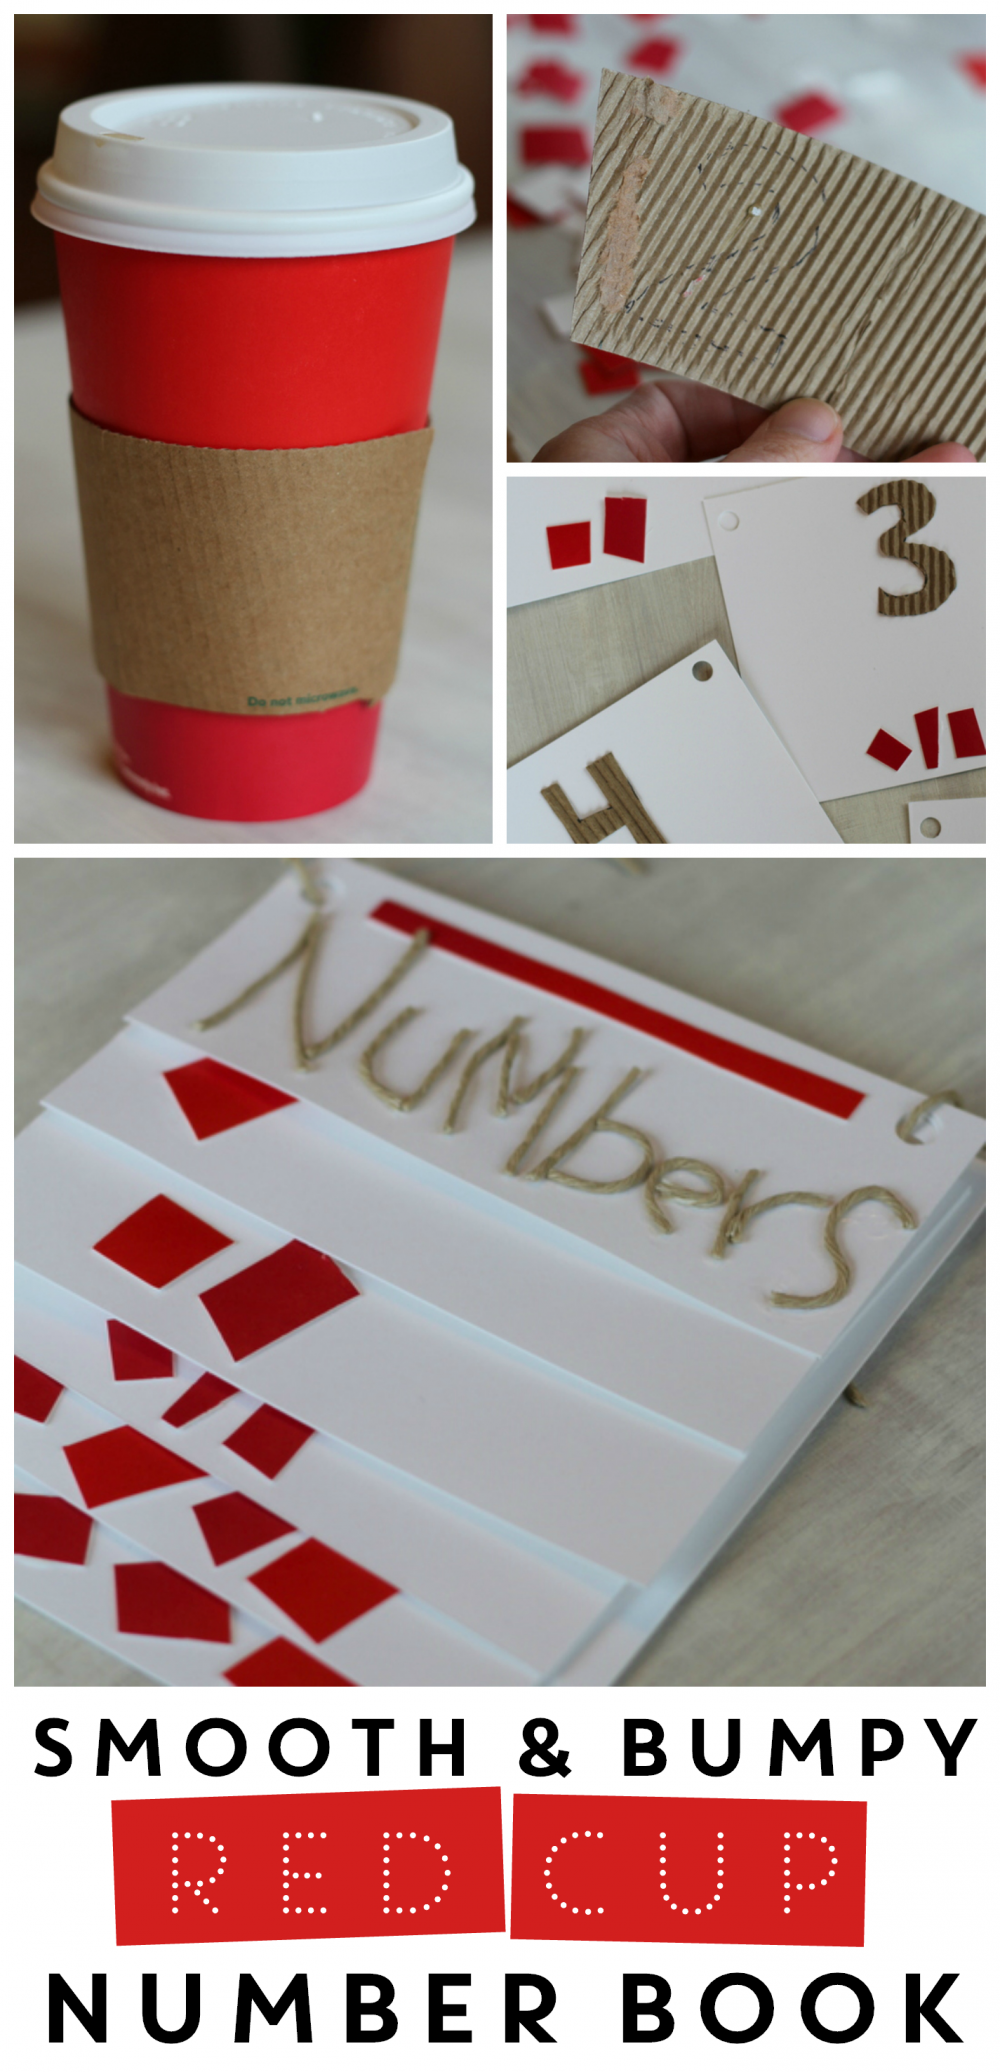 Smooth and Bumpy Red Cup Number Book